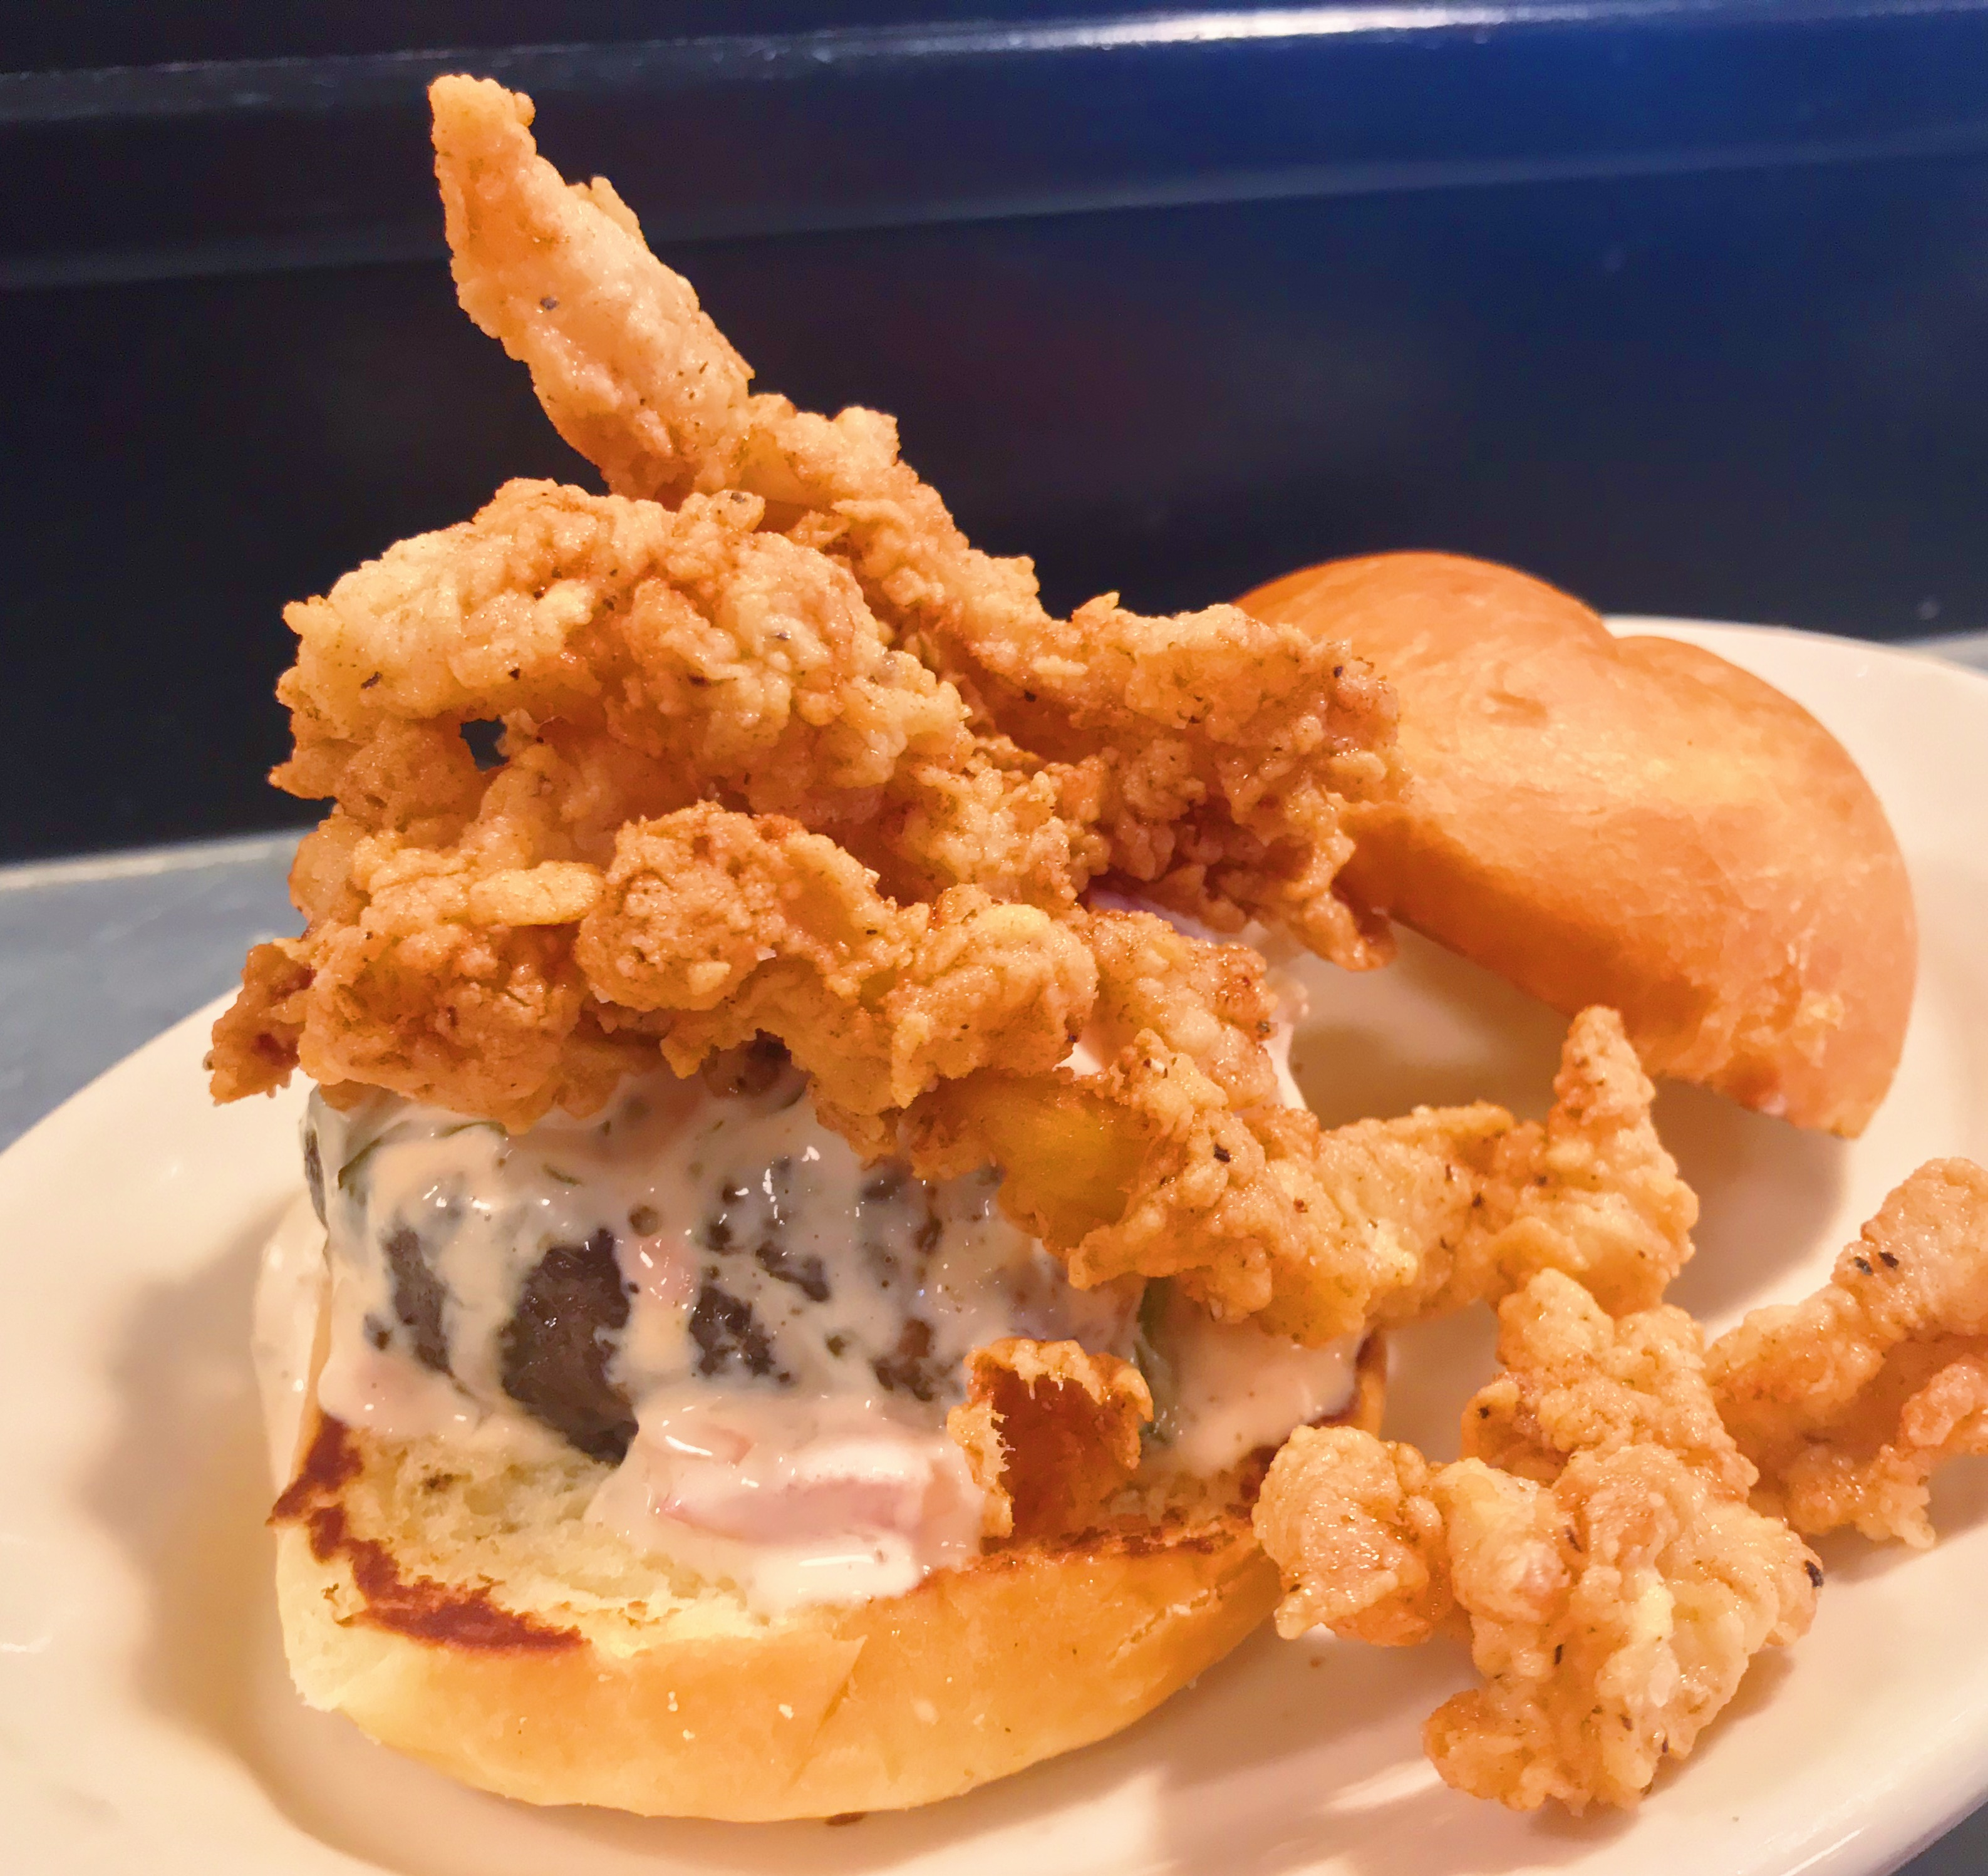 A Roadhouse burger topped with fried clams and tartar sauce.